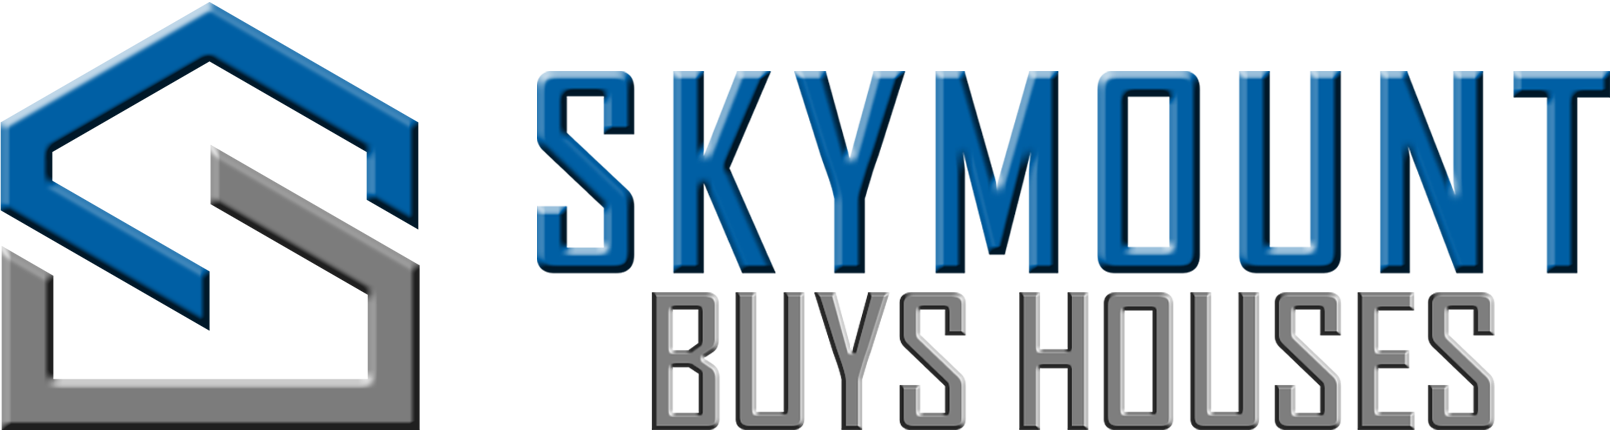 SKYMOUNT BUYS HOUSES logo